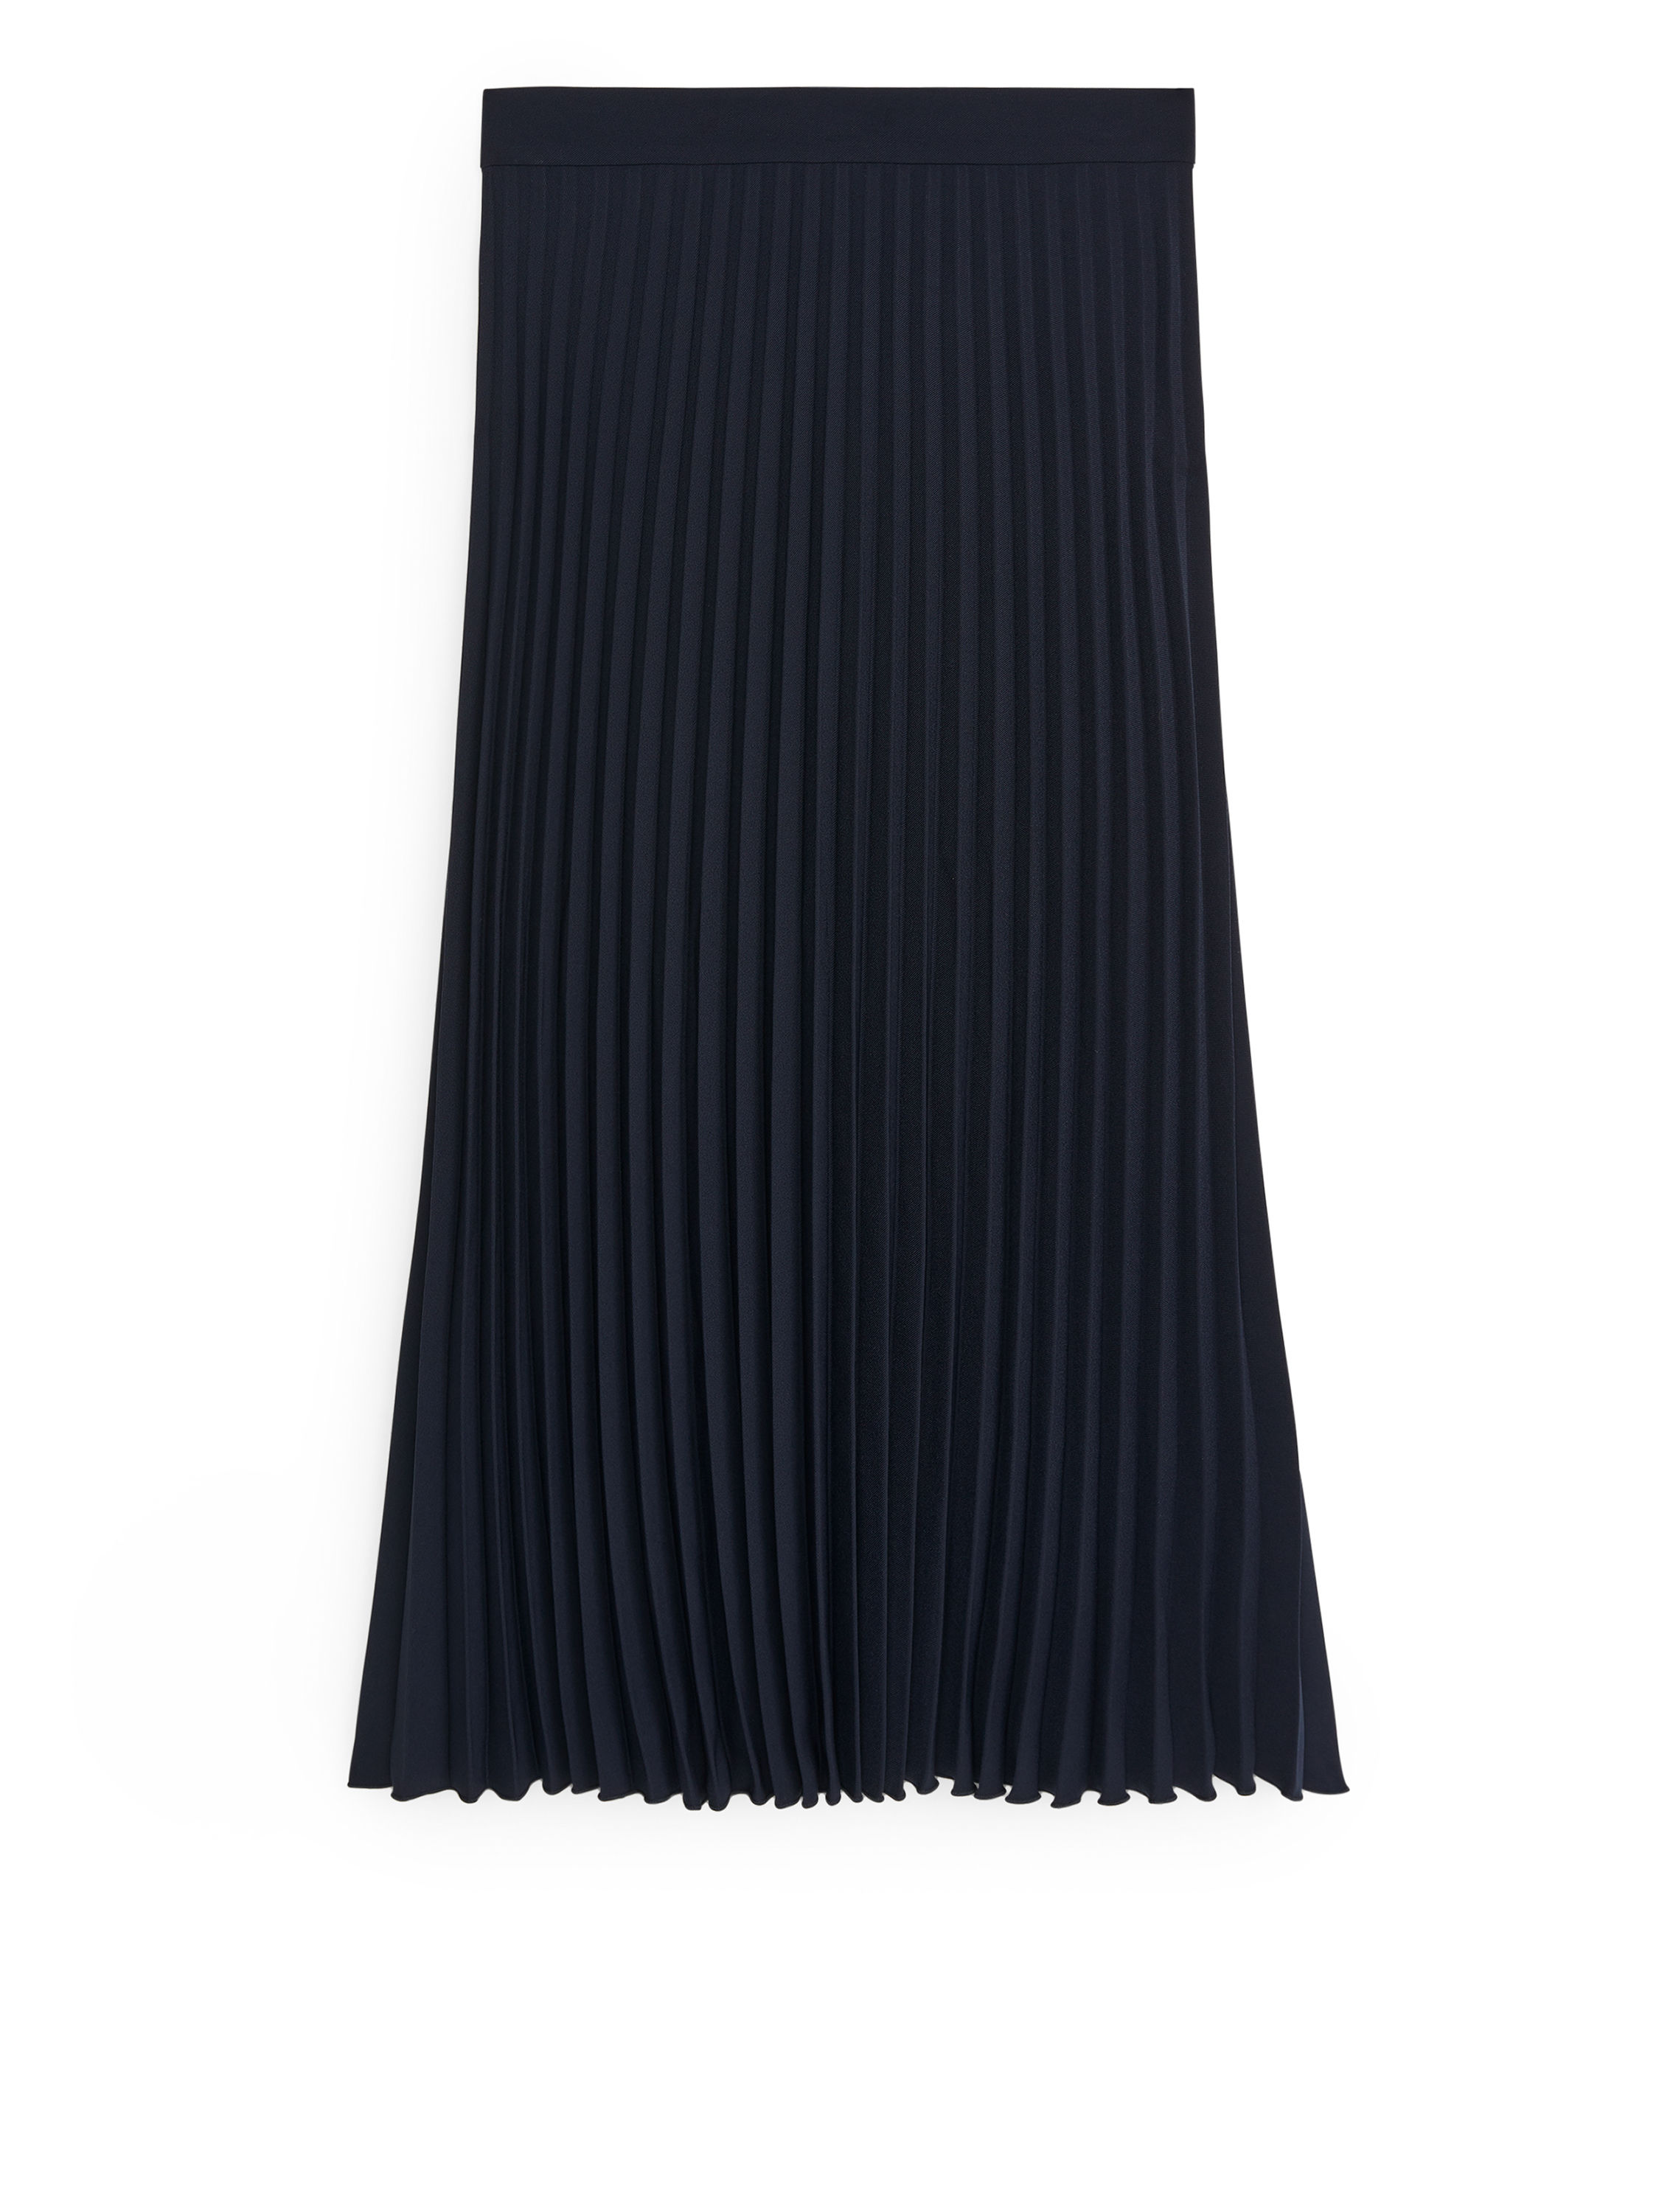 Fabric Swatch image of Arket pleated crepe skirt in blue